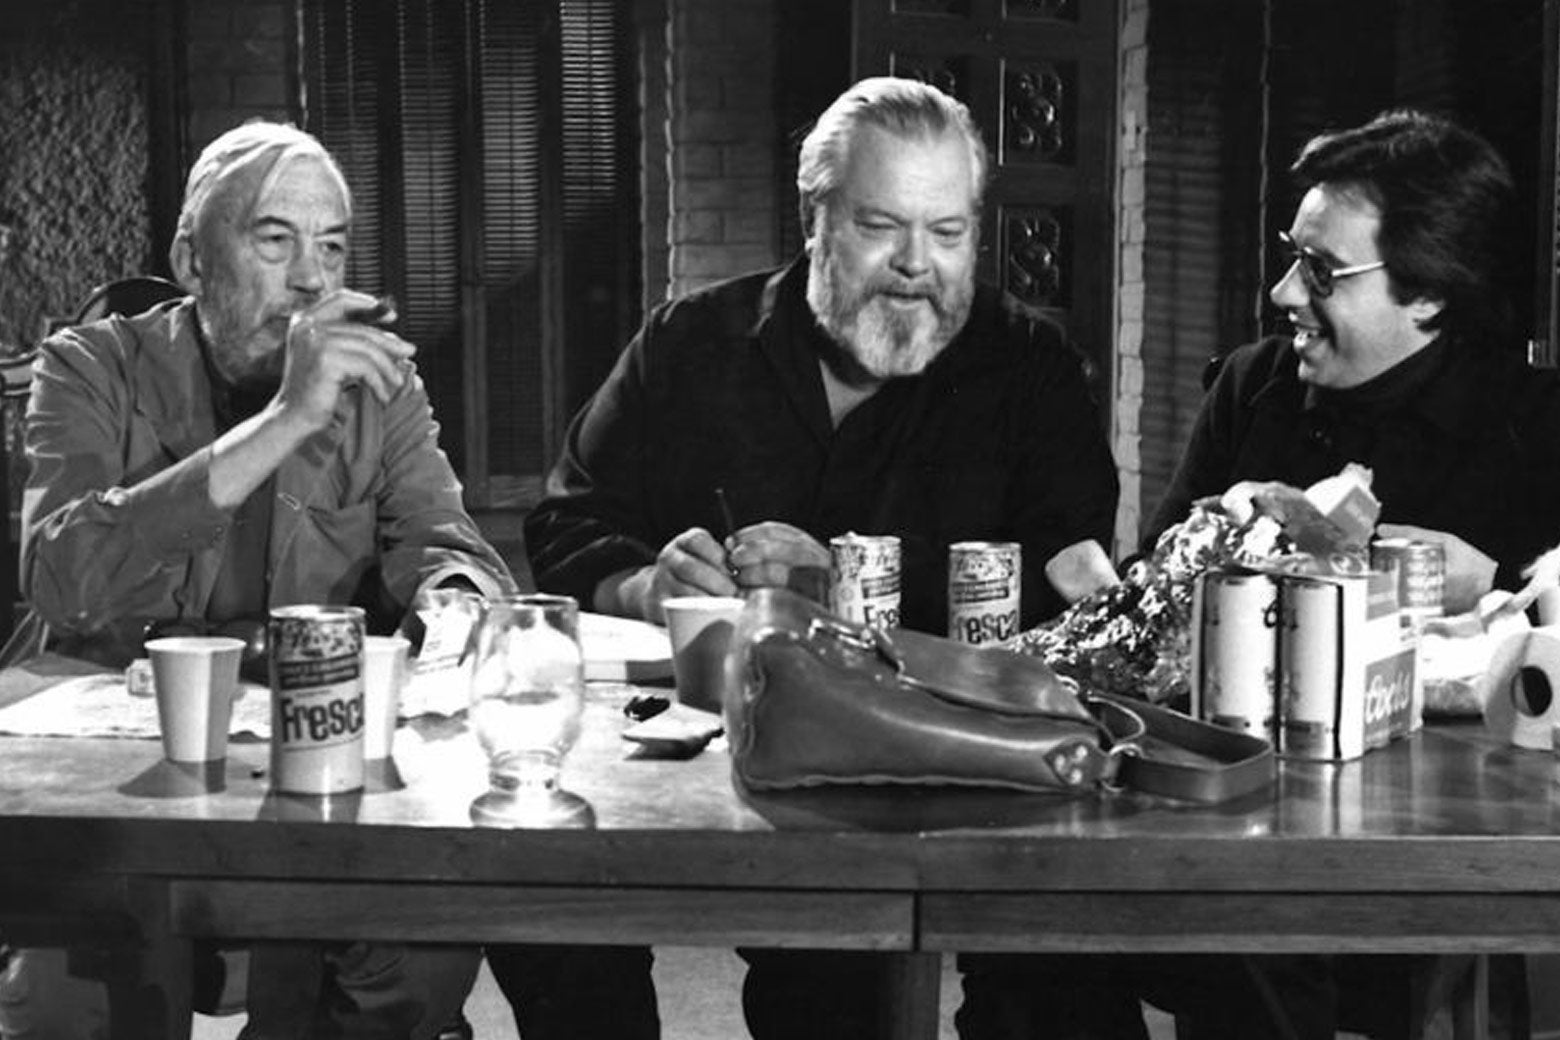 John Huston, Orson Welles, and Peter Bogdanovich in a scene from The Other Side of the Wind. They're seated at a table laden with cans of Fresca. Huston is smoking.